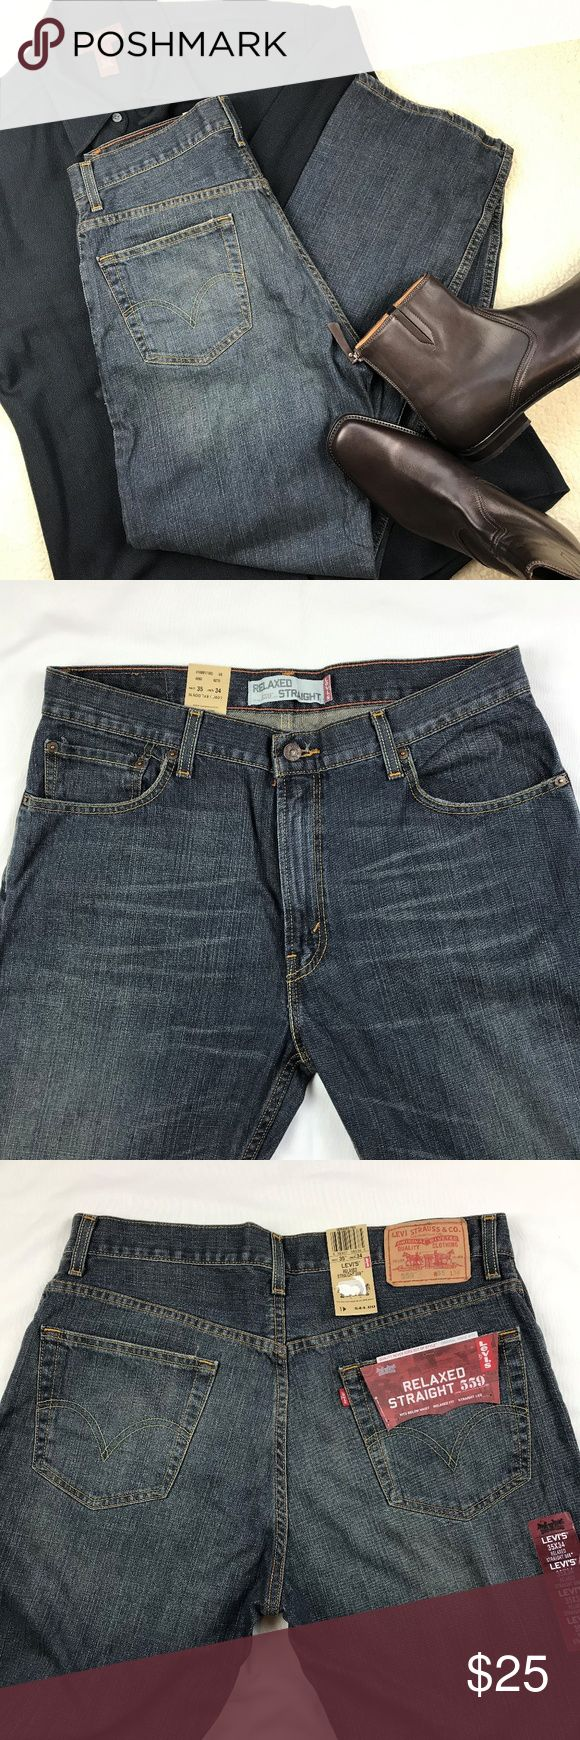 Men's Levi's 559 Relaxed Straigth Jeans, W35 Brand new Levi's 559 jeans, size W35 L34. Jeans sits below waist, relaxed fit with straight leg. Color name is Range. Levi's Jeans Relaxed